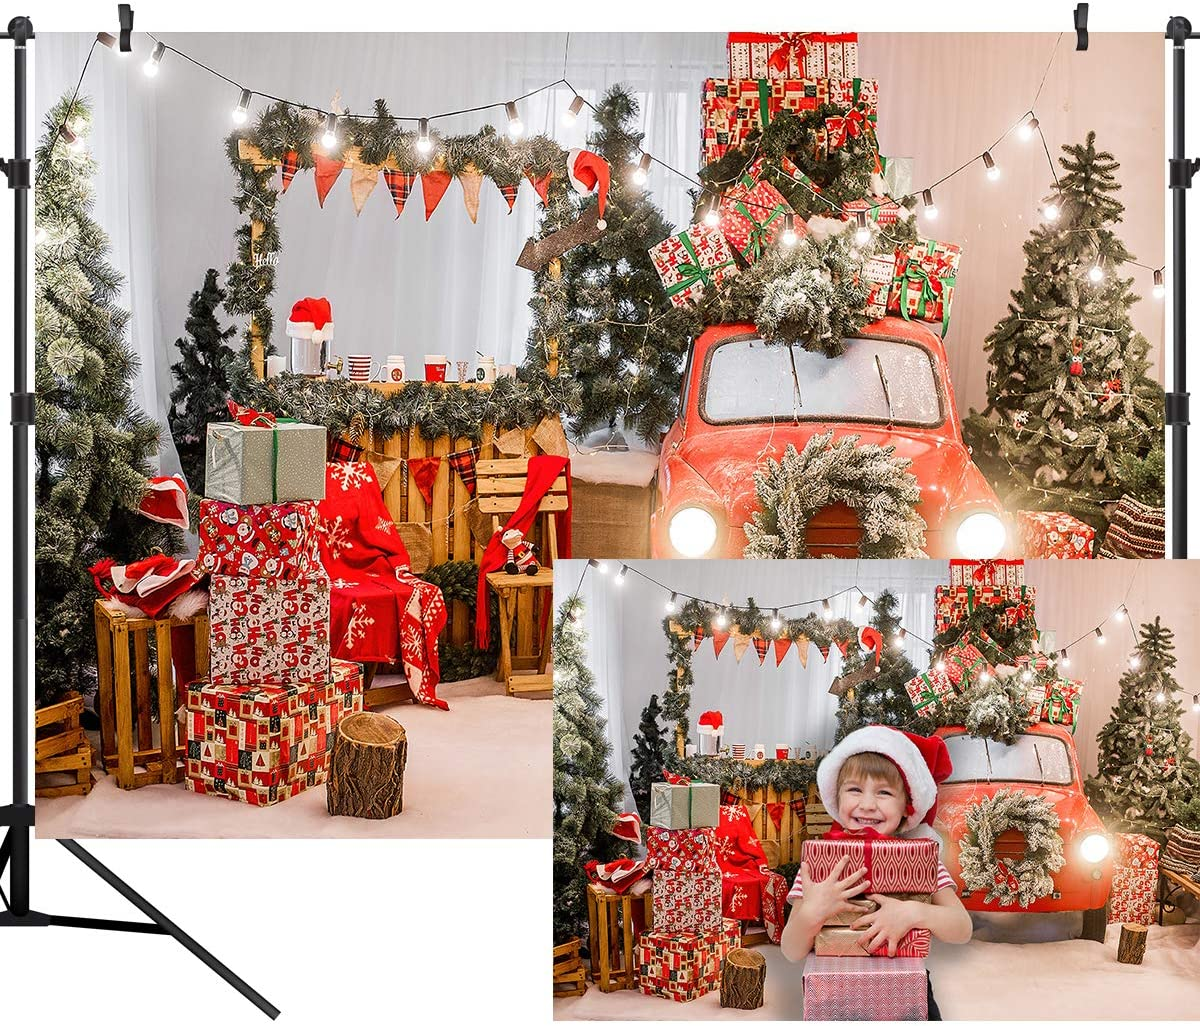 OUYIDA Christmas Photography Backdrop Snowflake Gold Glitter Xmas Floor Background Christmas Tree Gift Decoration for Kids Portrait Photo Studio Booth Photographer Prop 9X6FT CEM35B